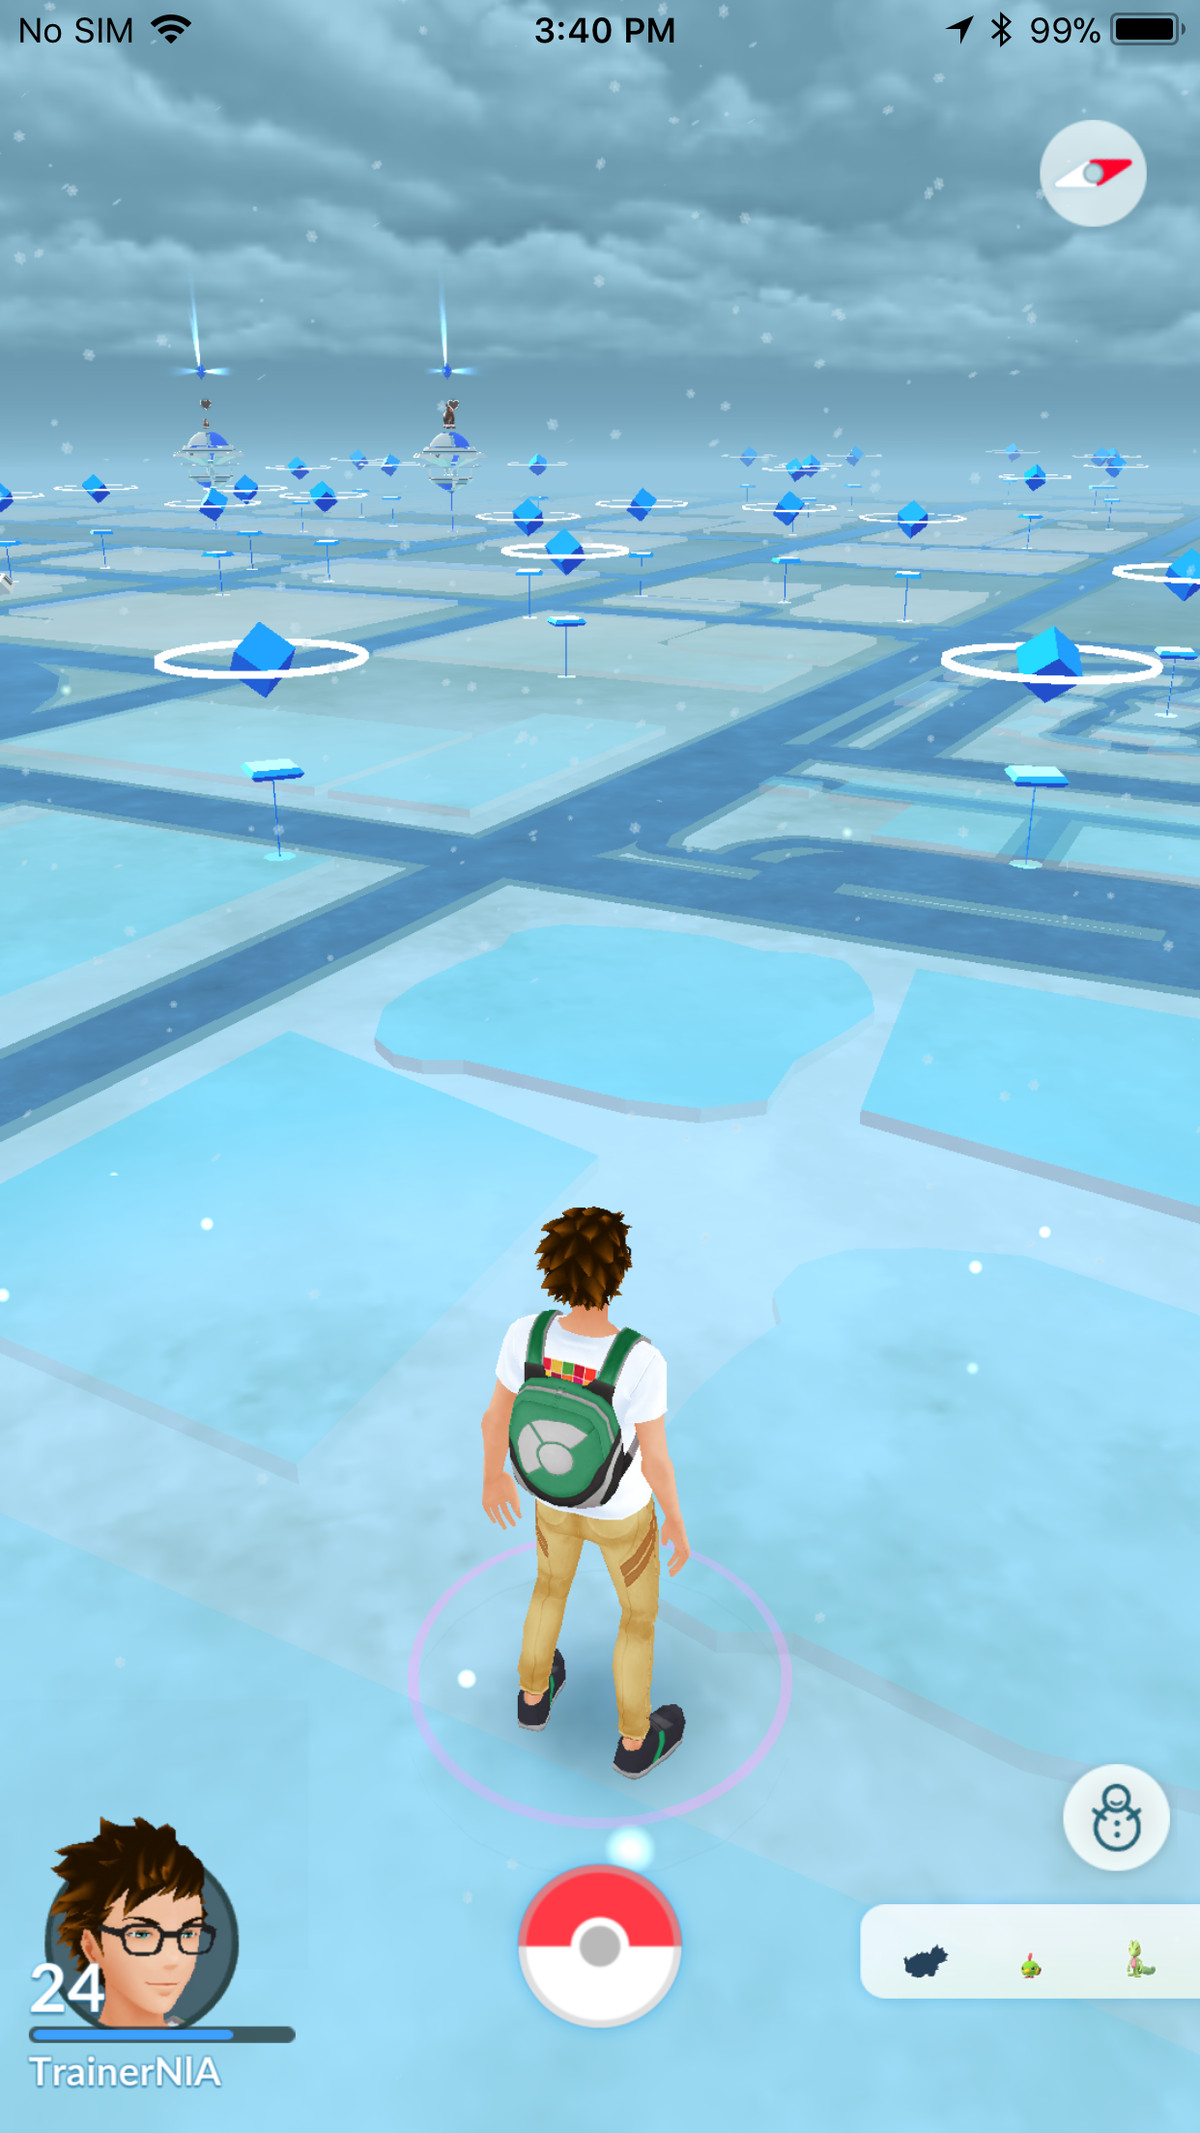 Snow in Pokémon Go, as of the weather system update.